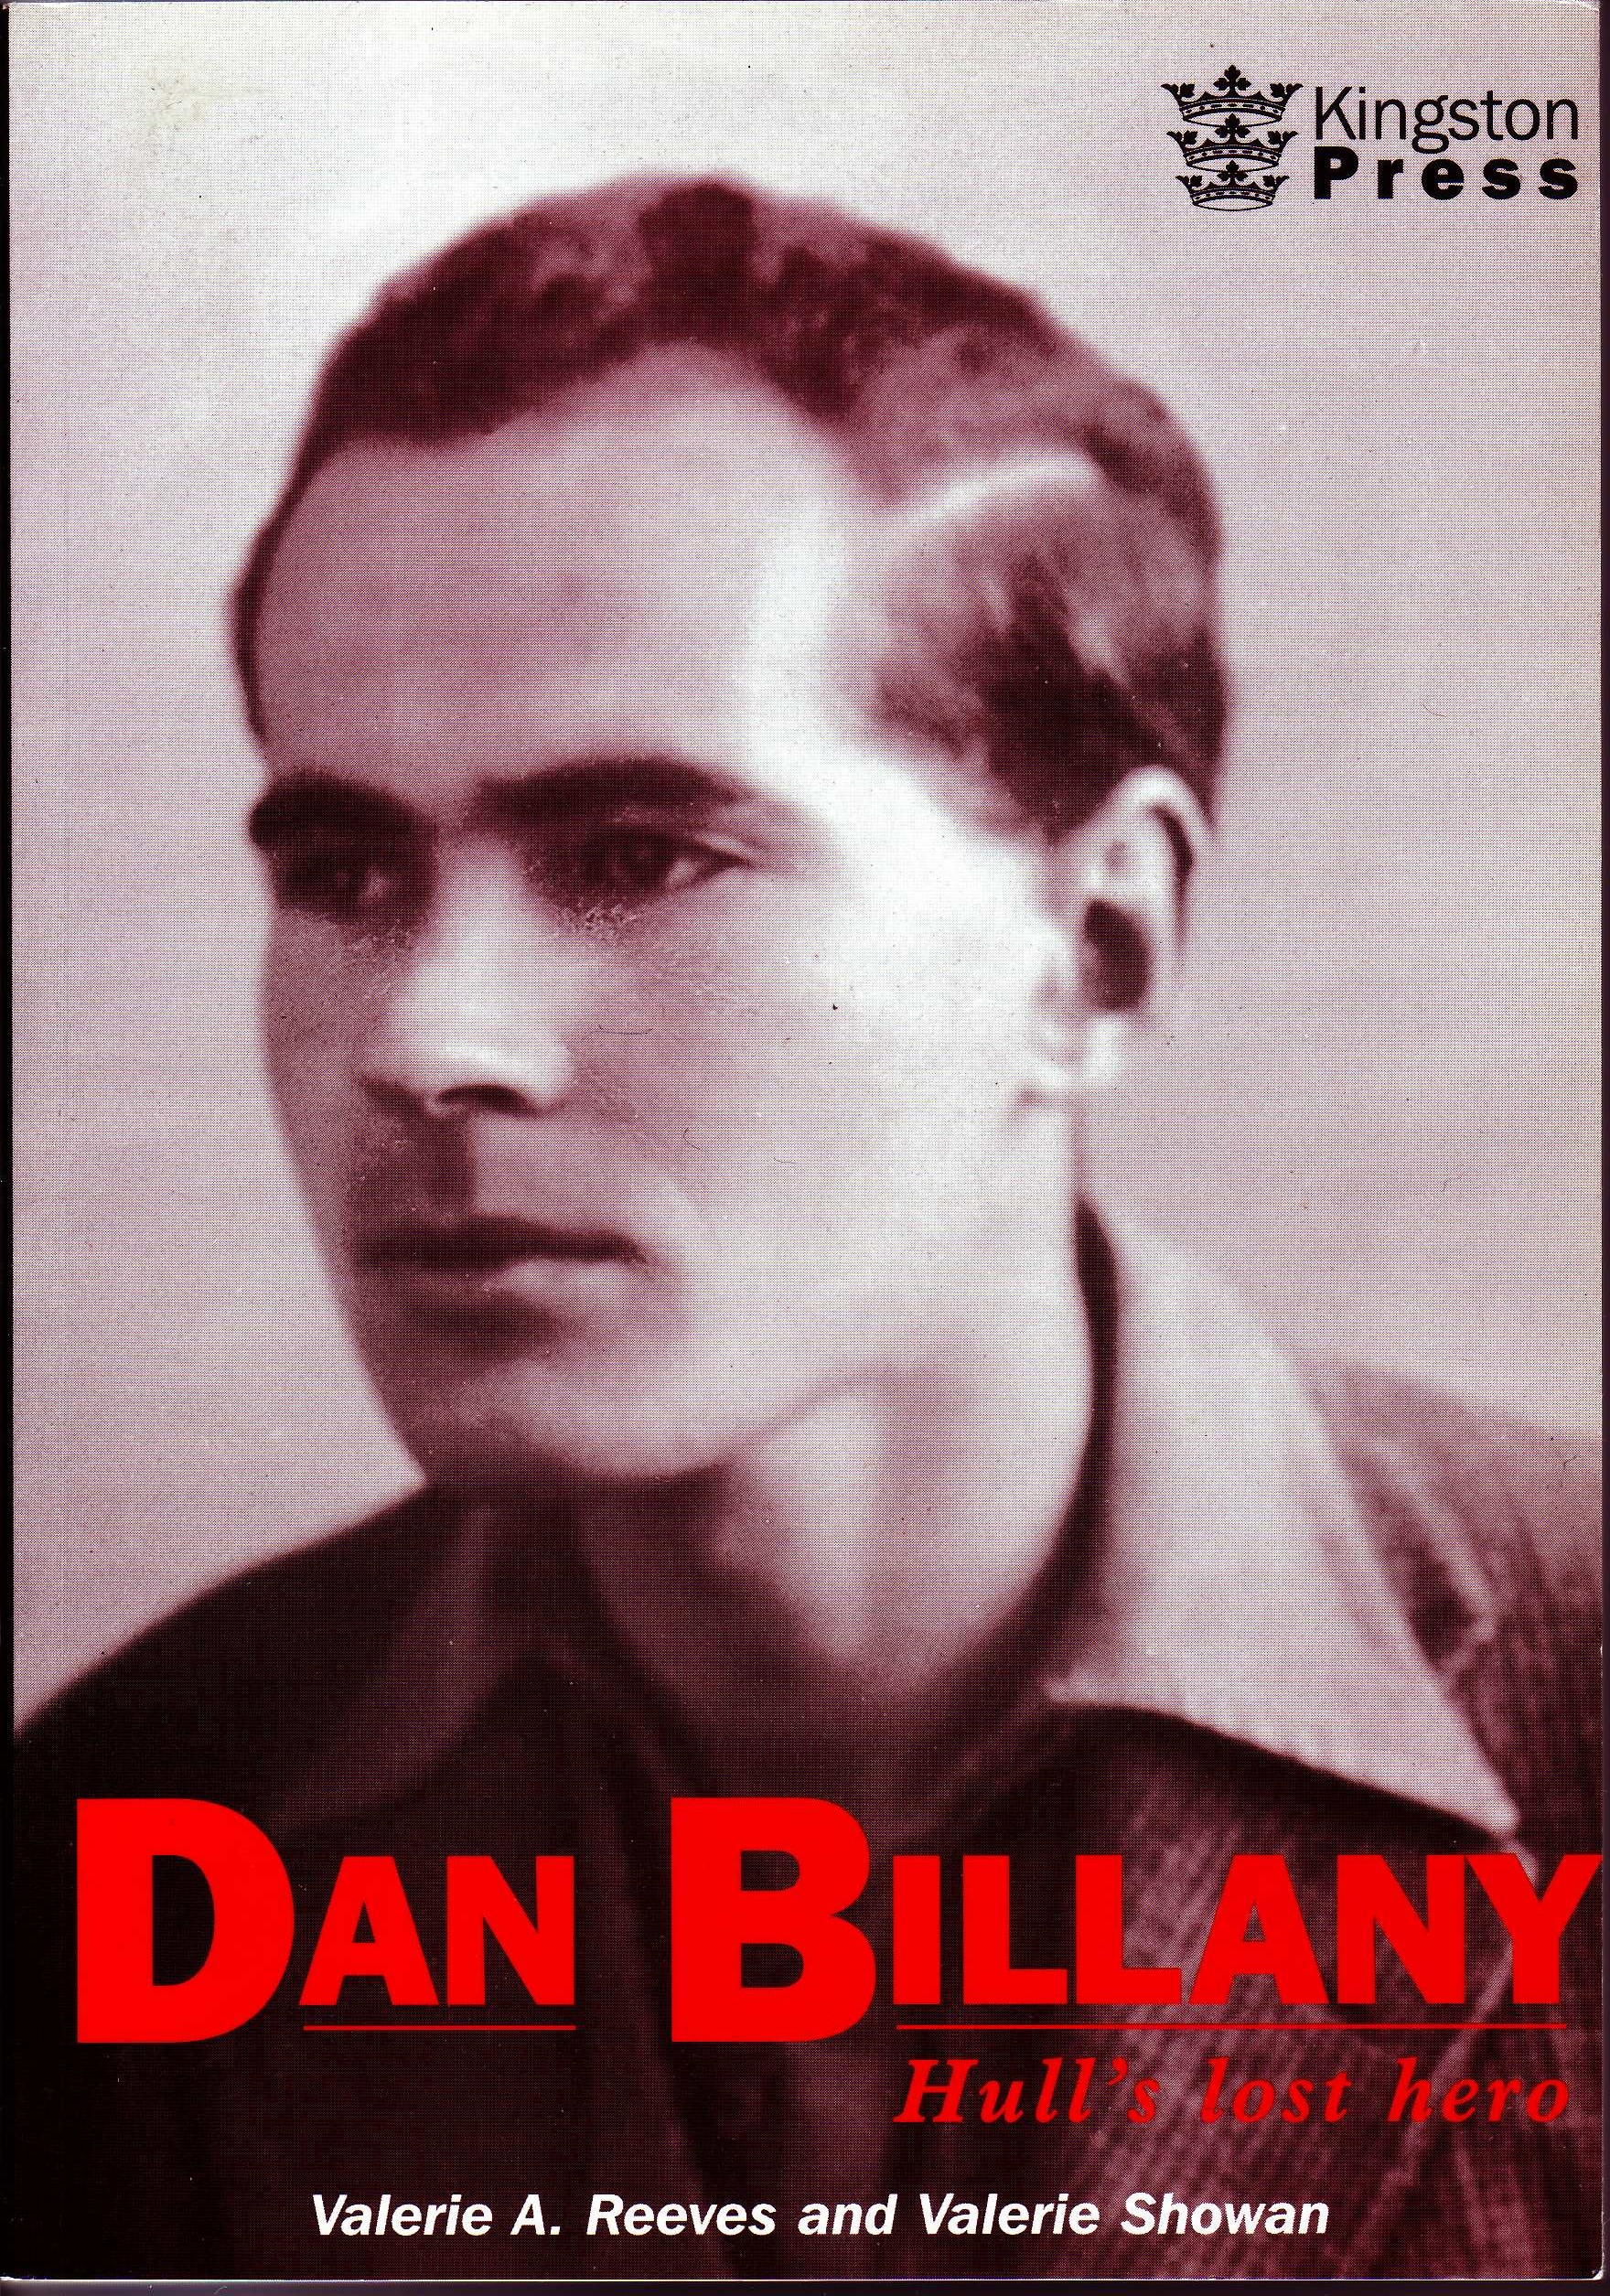 Dan Billany Hull's Lost Hero by Valerie Ann Reeves and Val Showan